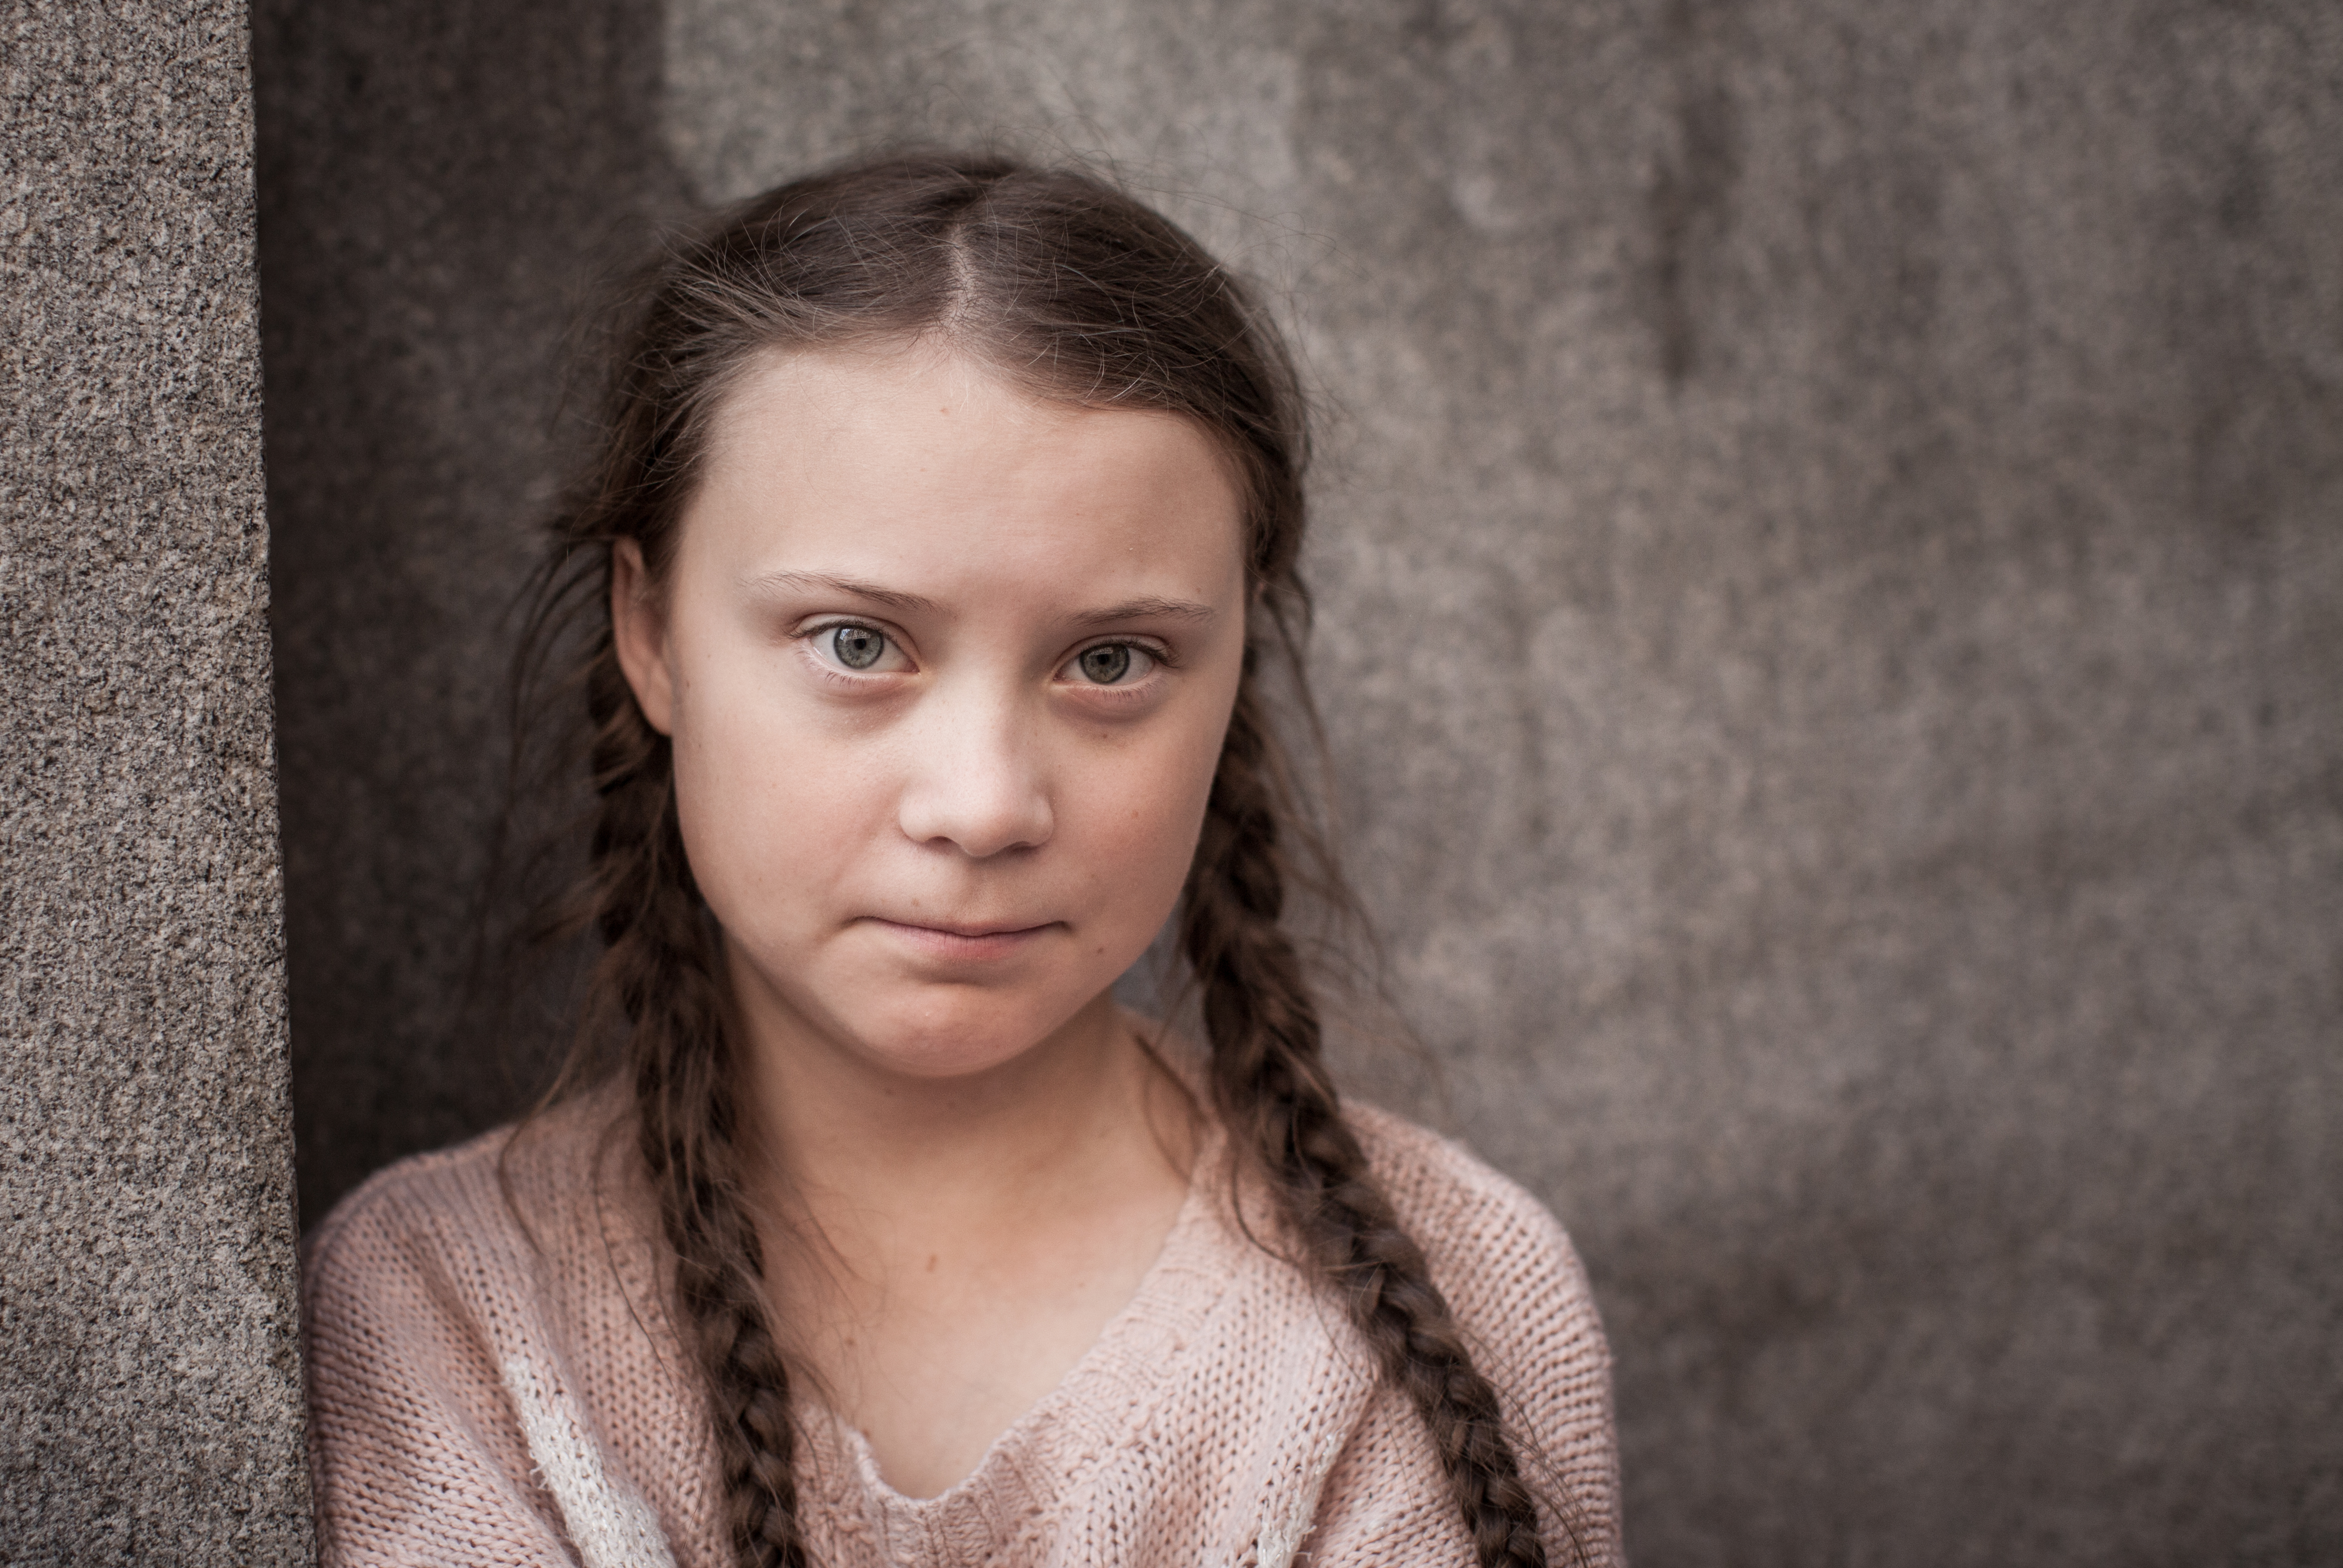 Proof Greta Thunberg's Climate Activism Is Working